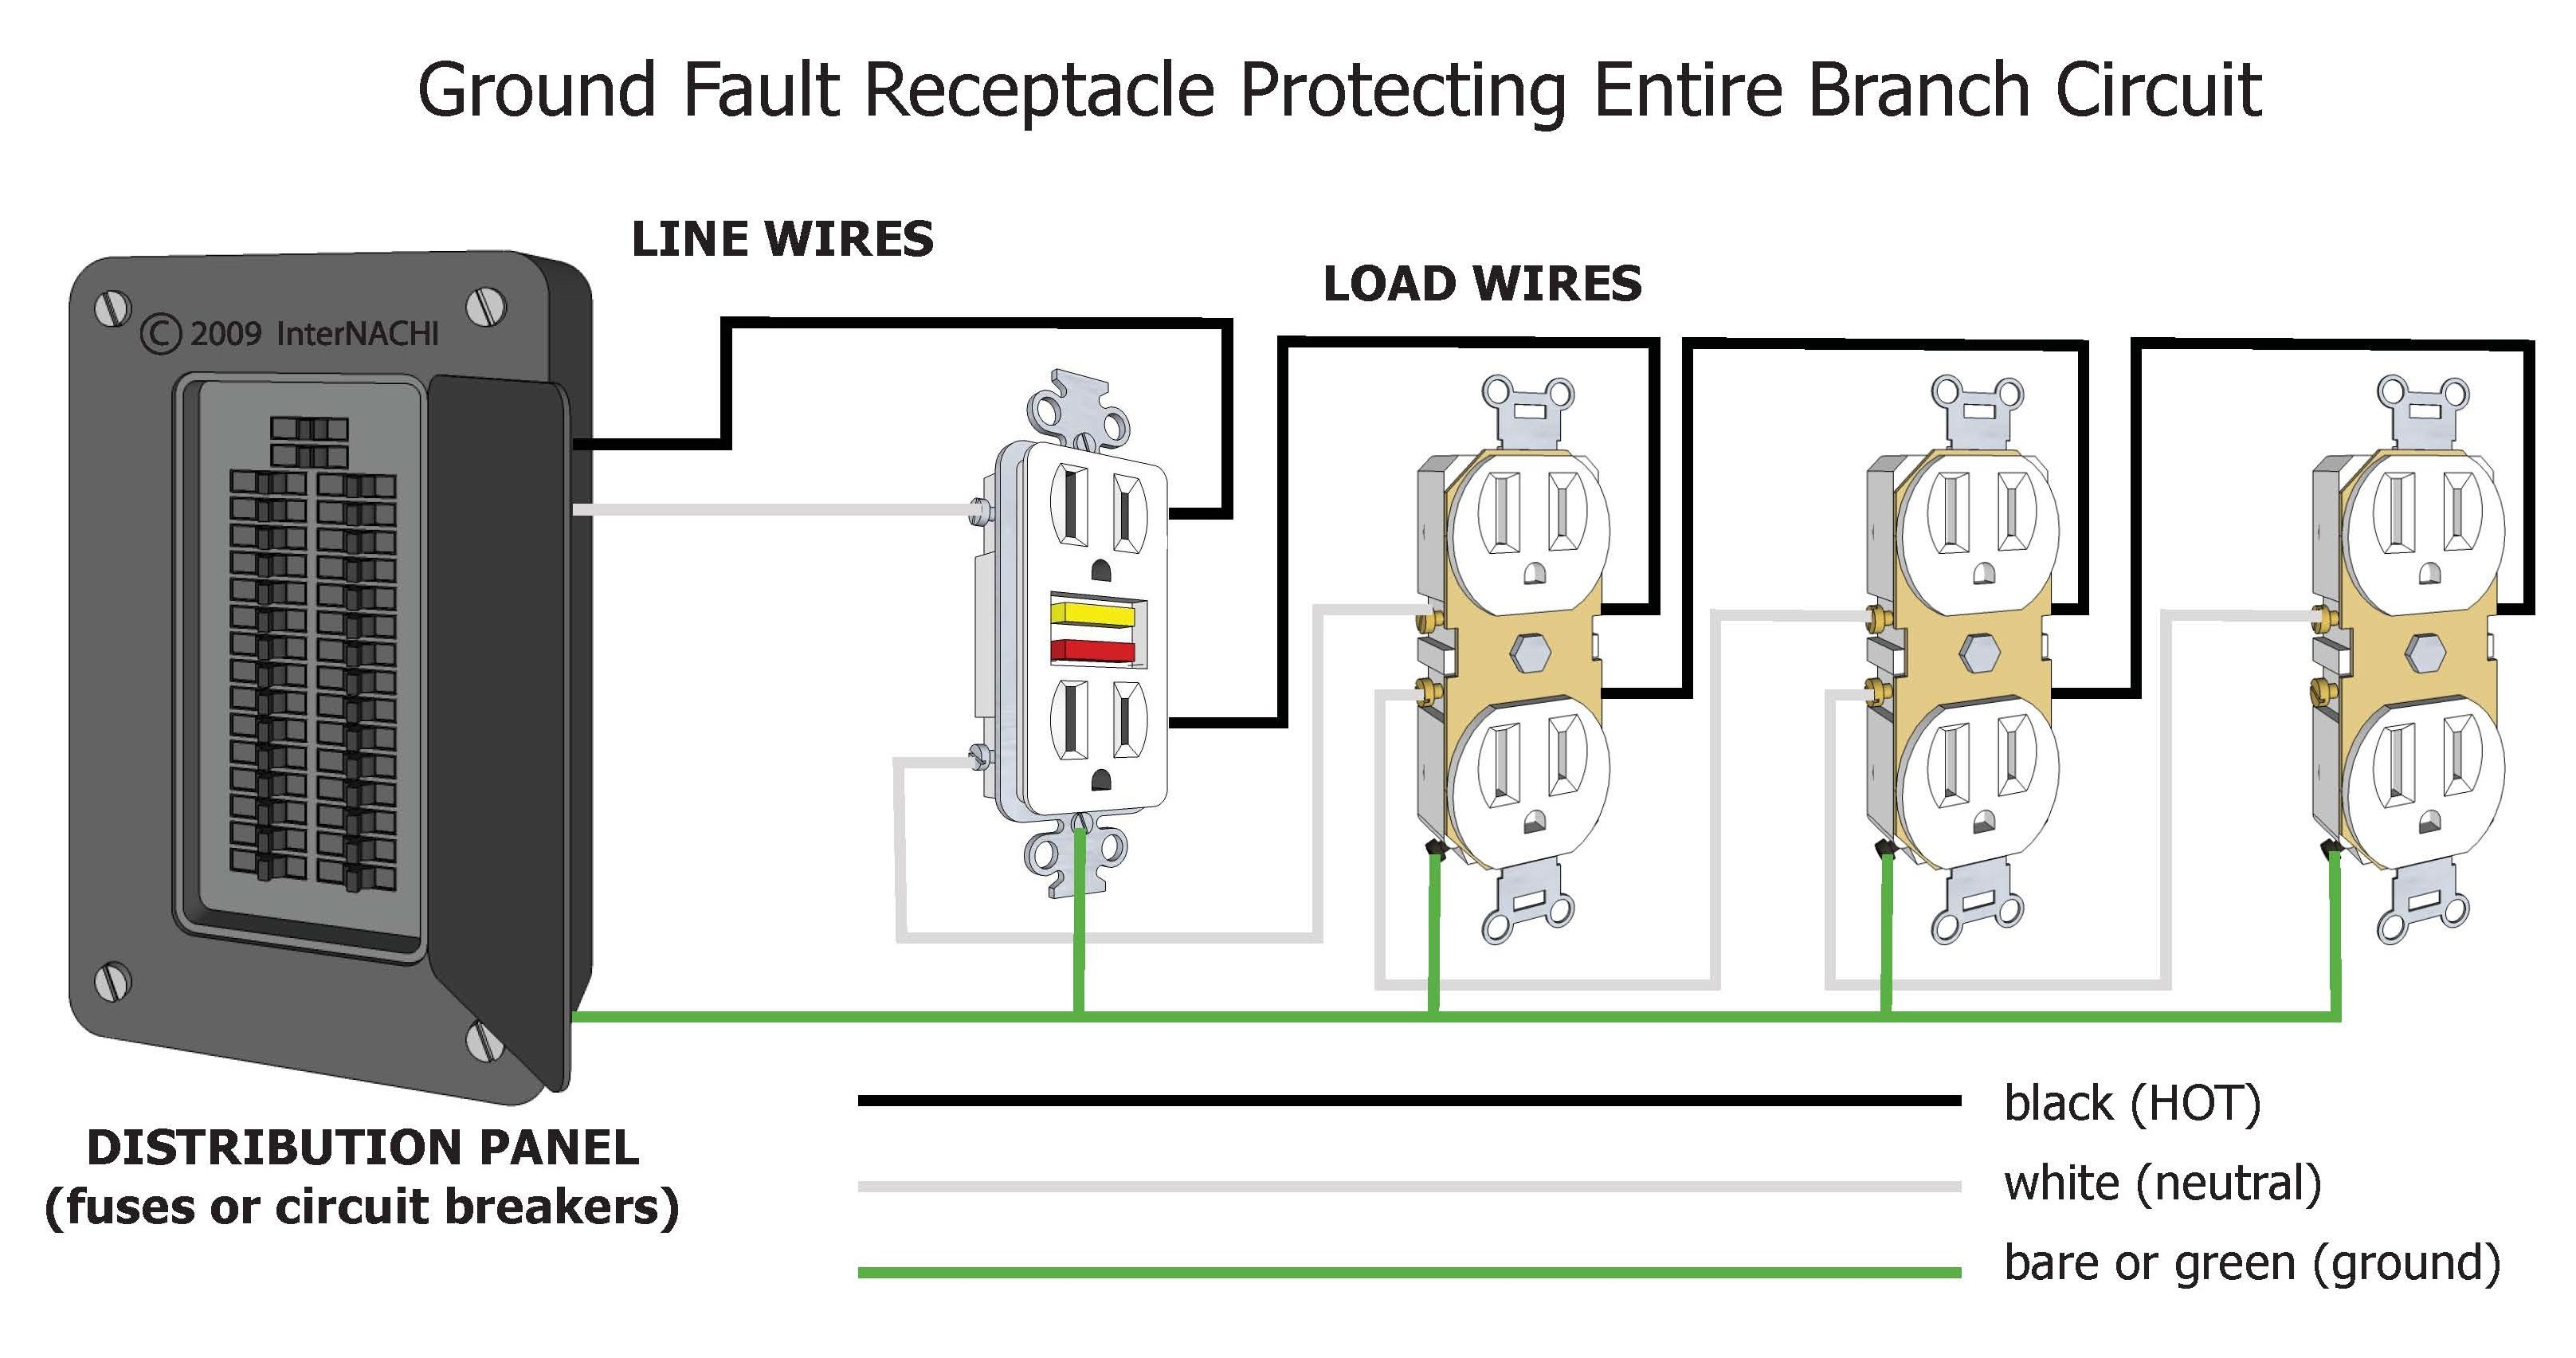 gfci branch circuit color gfci circuit breaker wiring diagram efcaviation com gfci wiring diagram at mr168.co